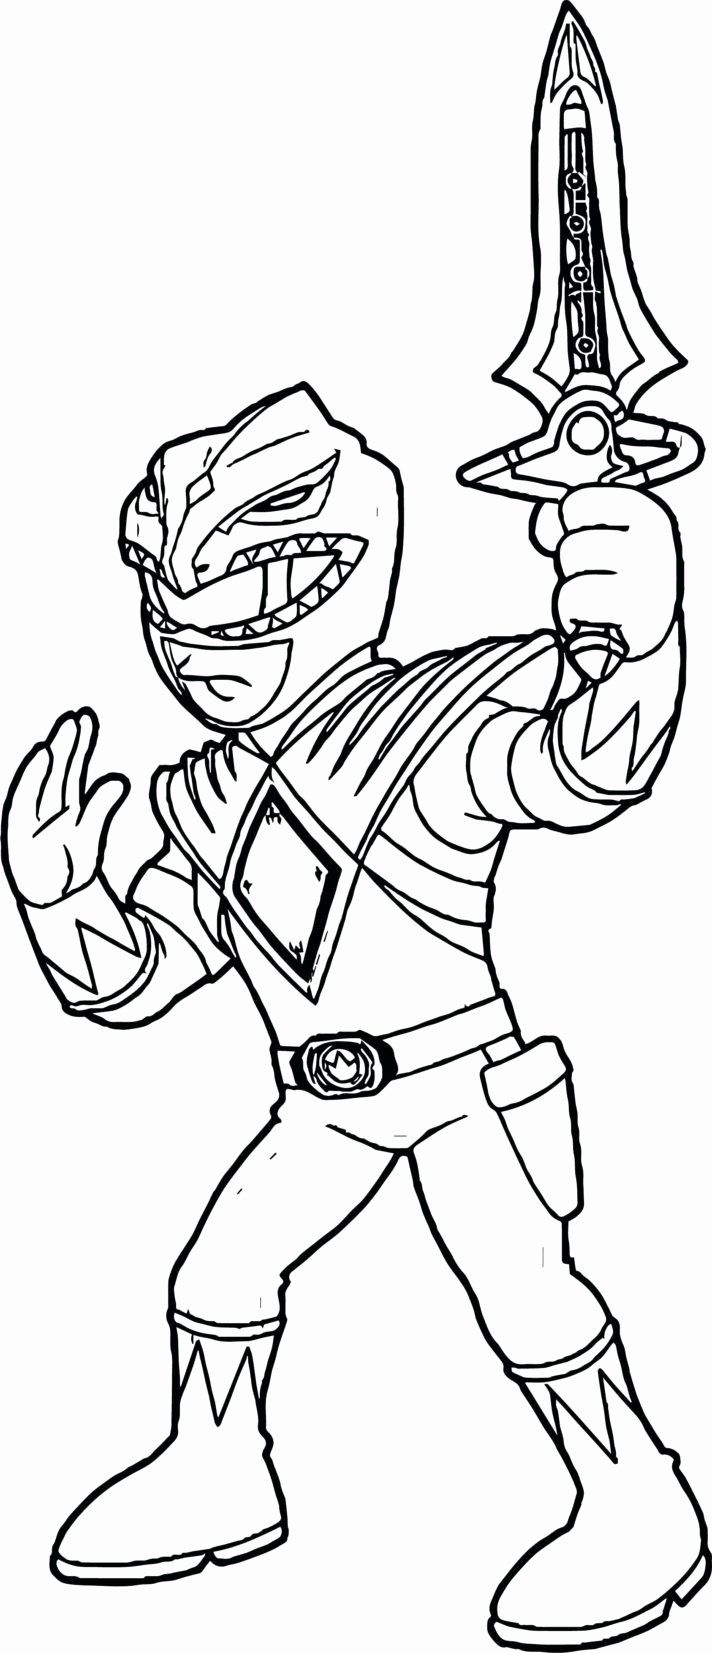 Power Ranger Coloring Book New Best Coloring Top 24 Splendiferous Power Rangers Red Ranger Power Rangers Coloring Pages Dinosaur Coloring Pages Coloring Pages